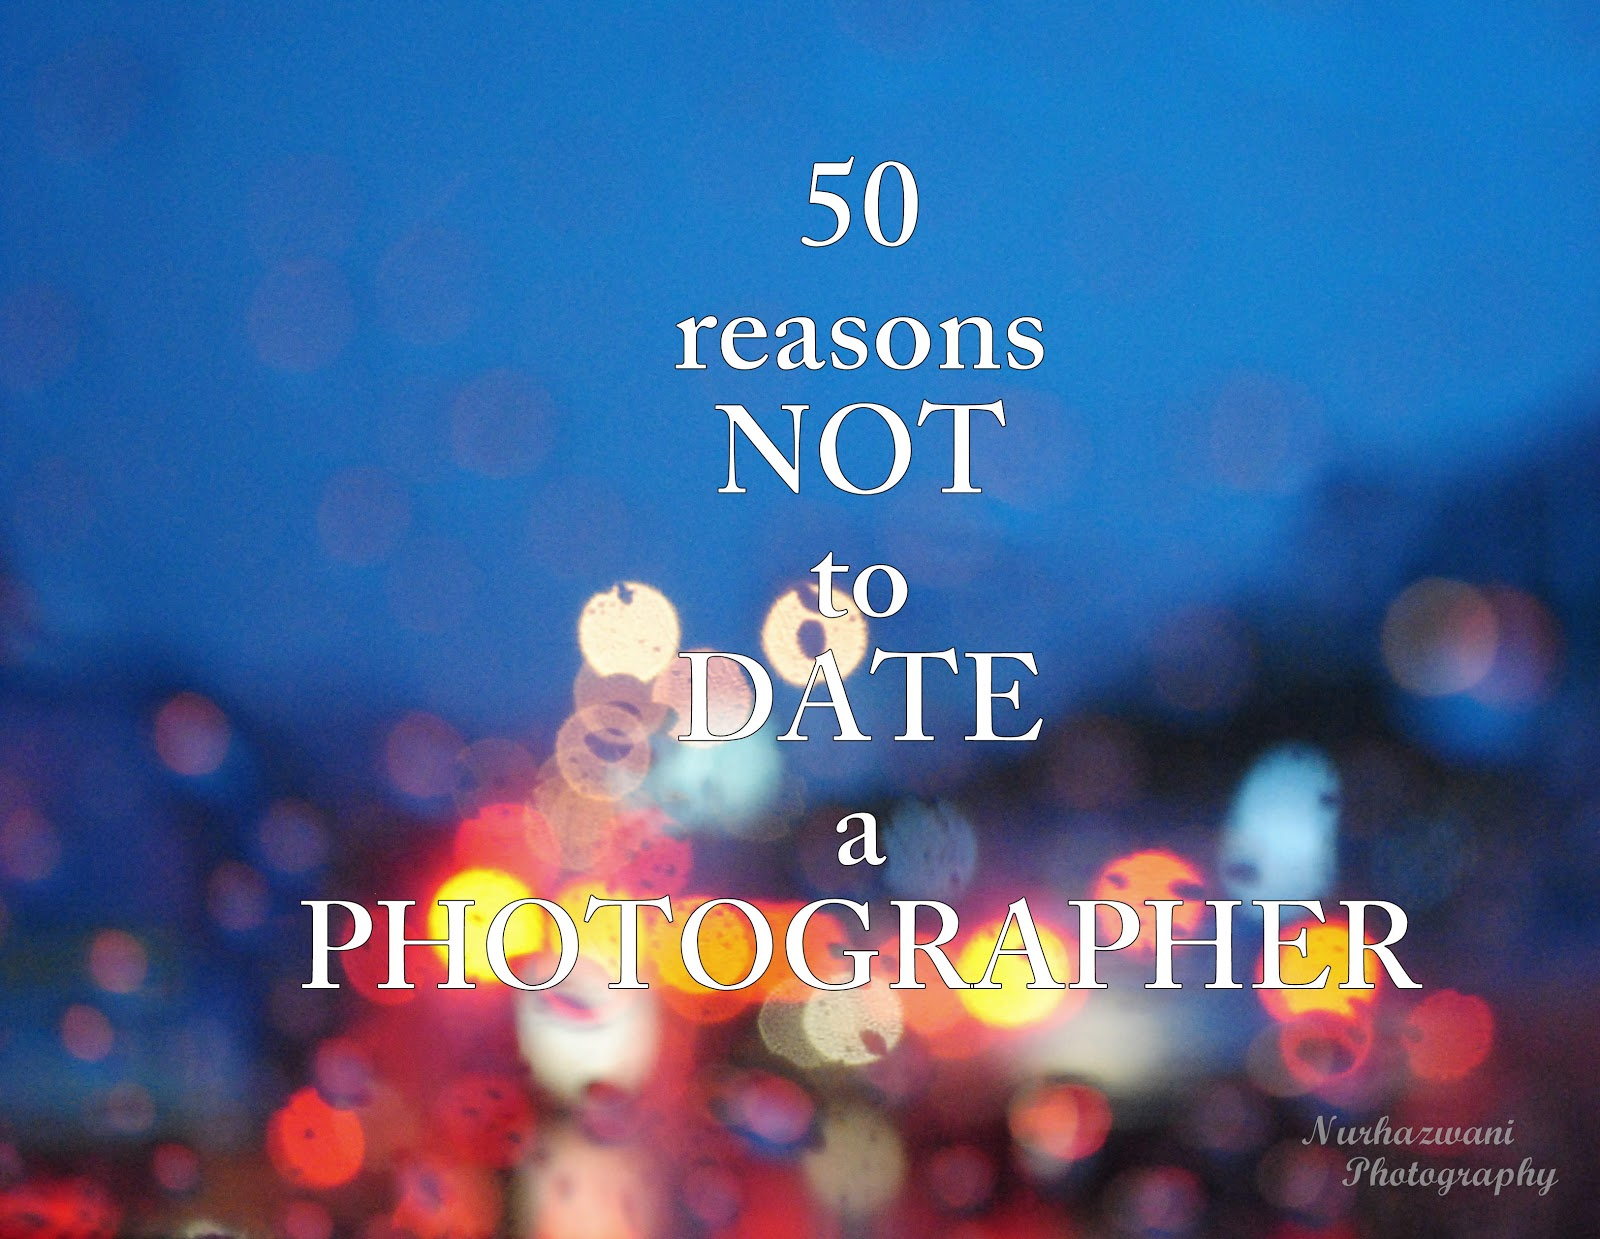 Reasons for not dating a photographer